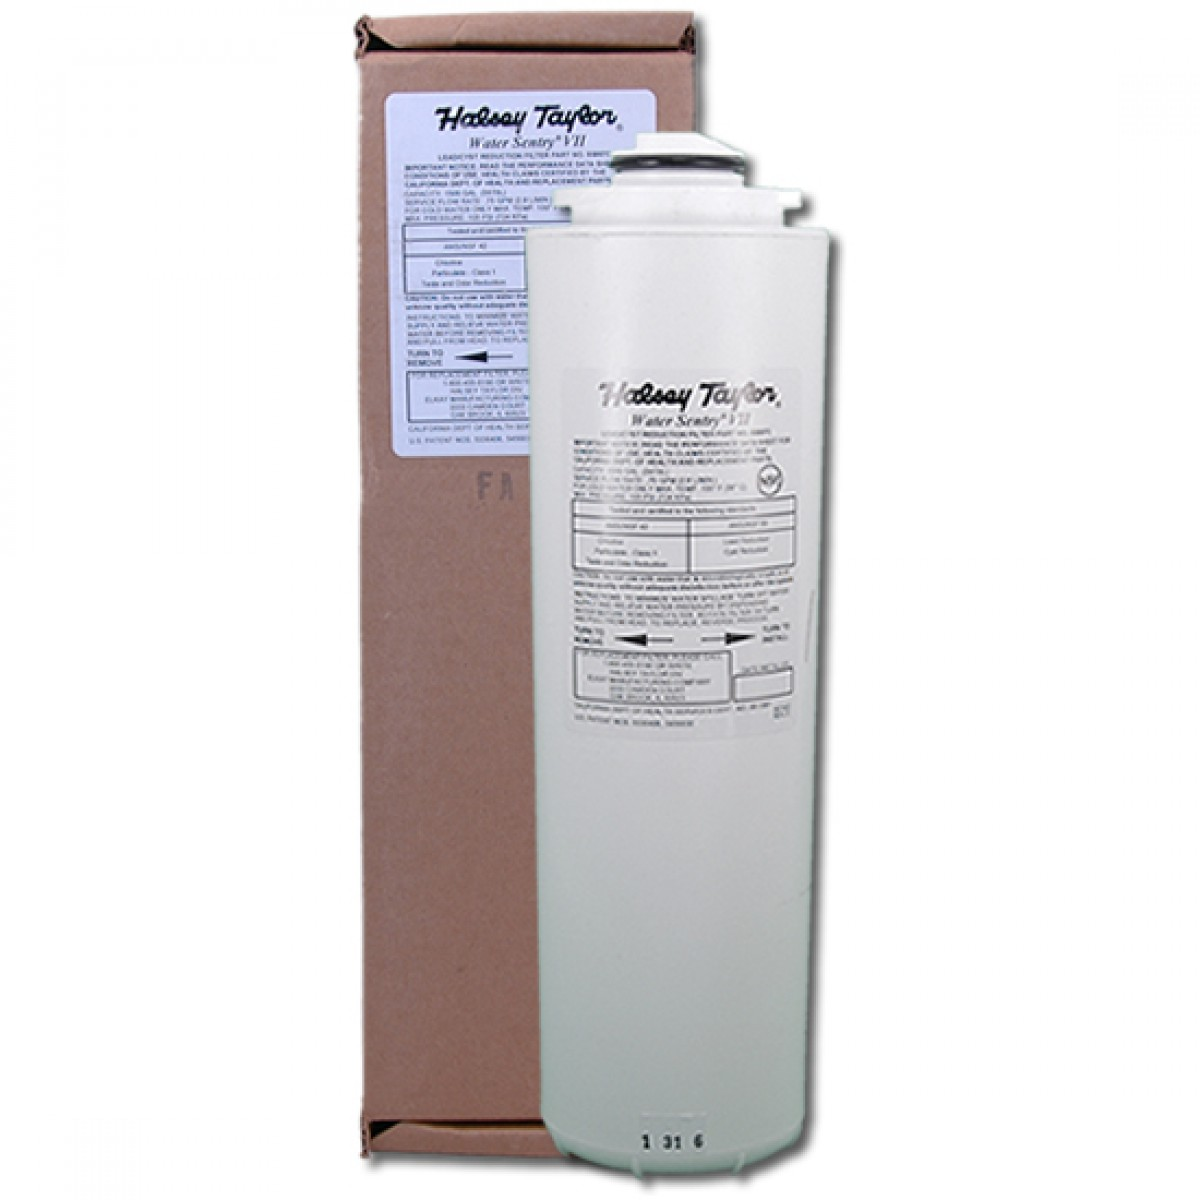 Halsey taylor 55897c water sentry vii drinking fountain filter for Water fountain filtration system